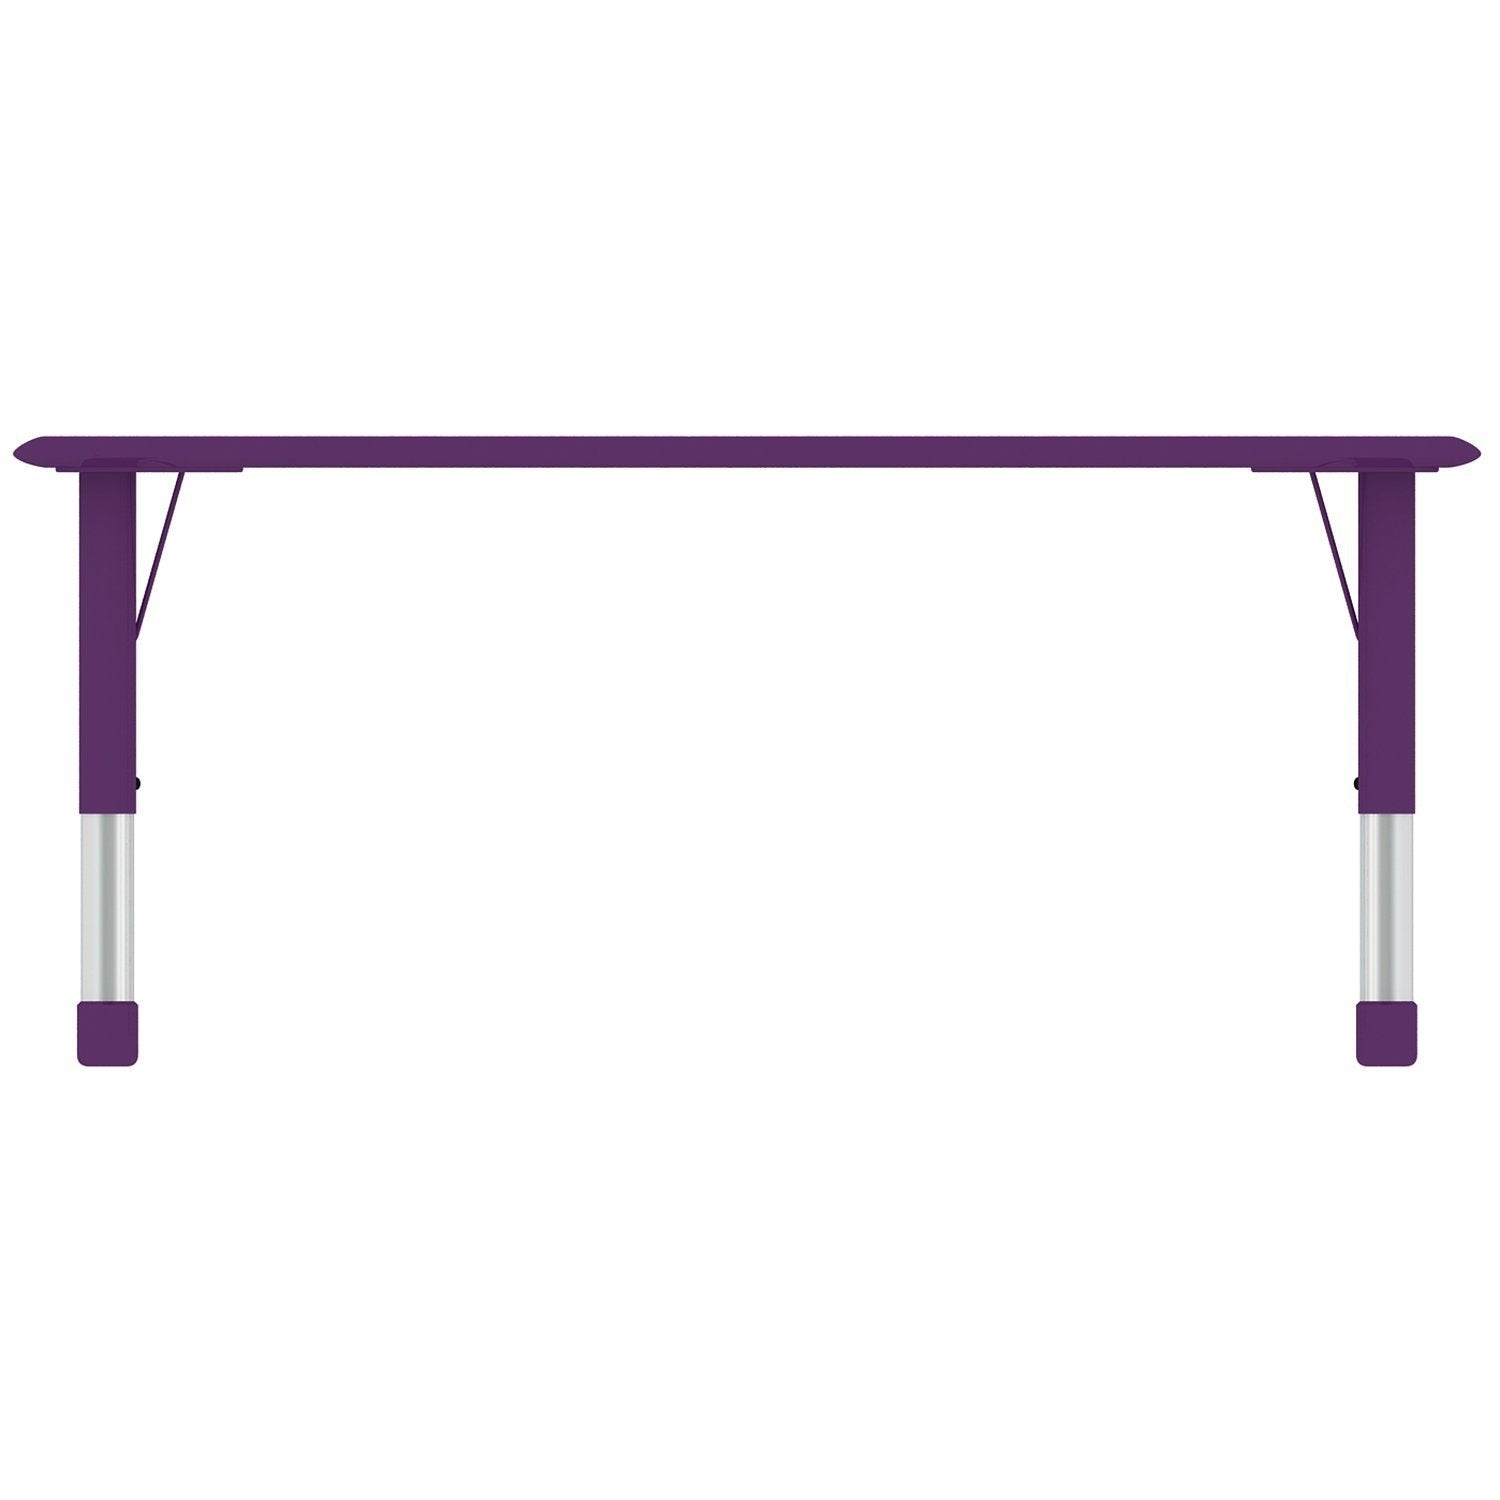 school rectangle table. 2xhome - Purple Kids Table Height Adjustable Rectangle Shape Activity School Childs Bright Colorful Preschool Free Shipping Today C